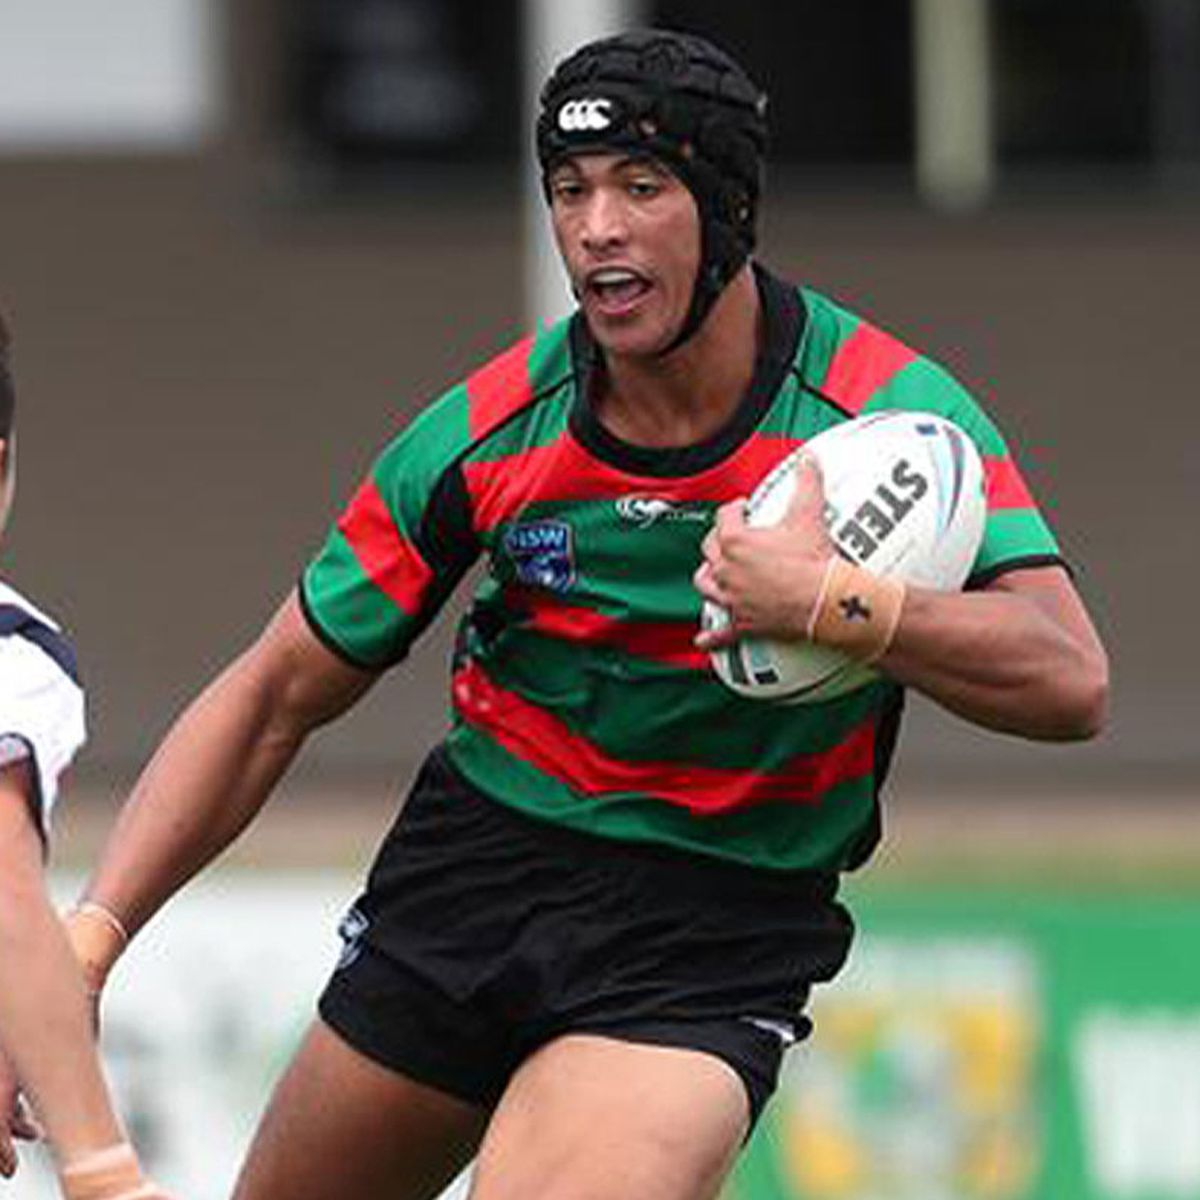 Nrl News Joseph Suaalii Set To Officially Sign With South Sydney Rabbitohs